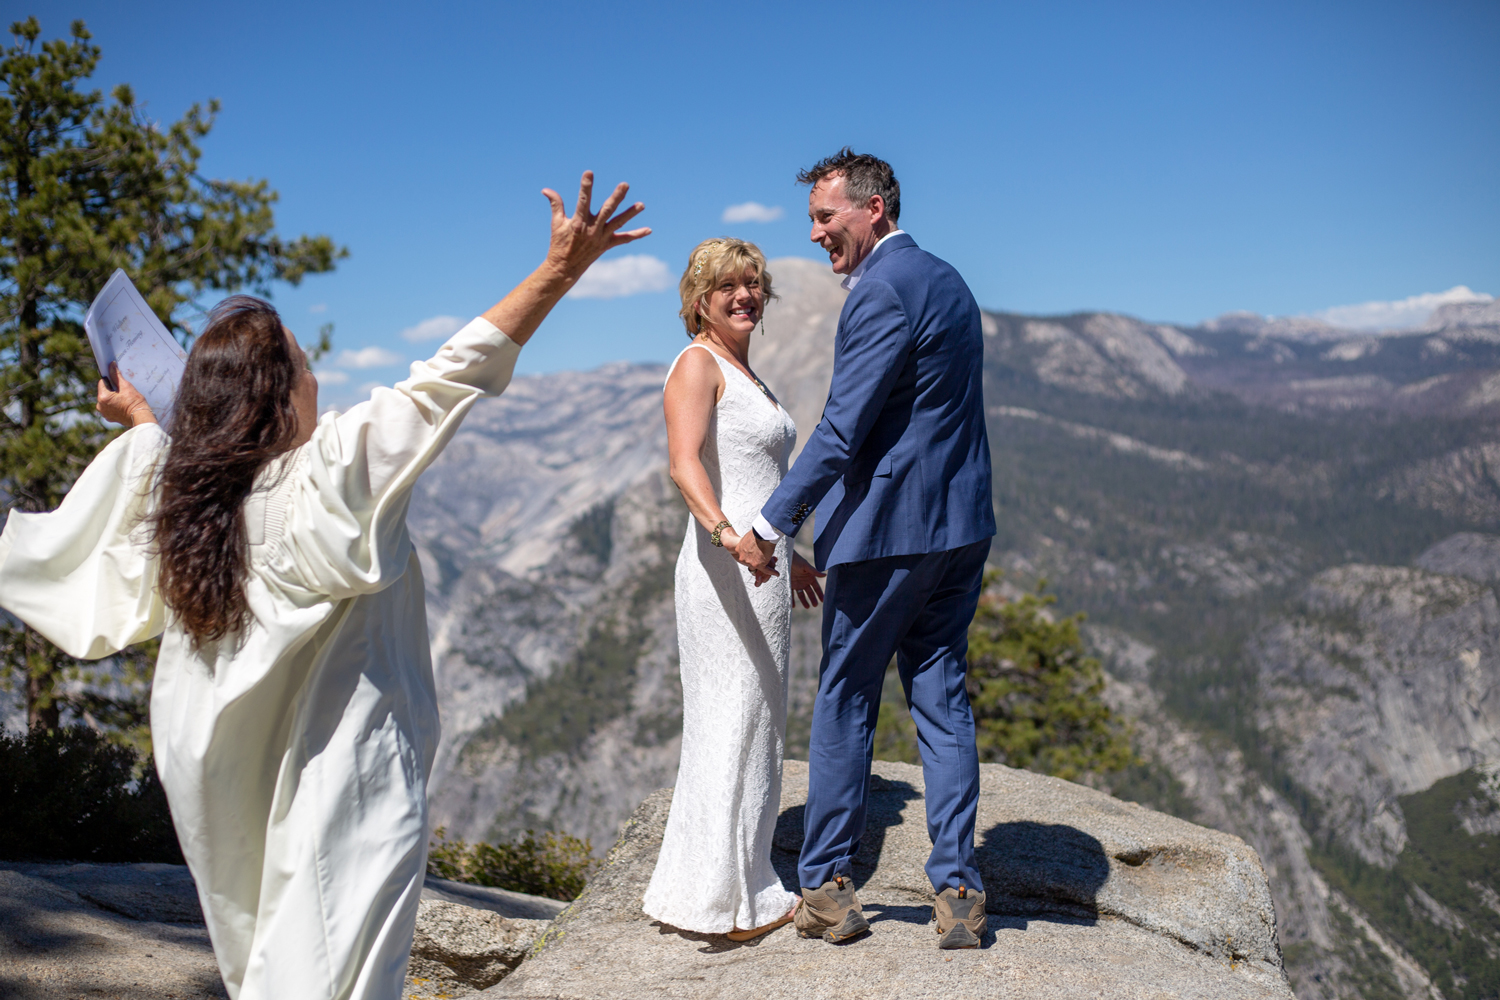 Yosemite-Wedding-photography-lisa-james (5).jpg